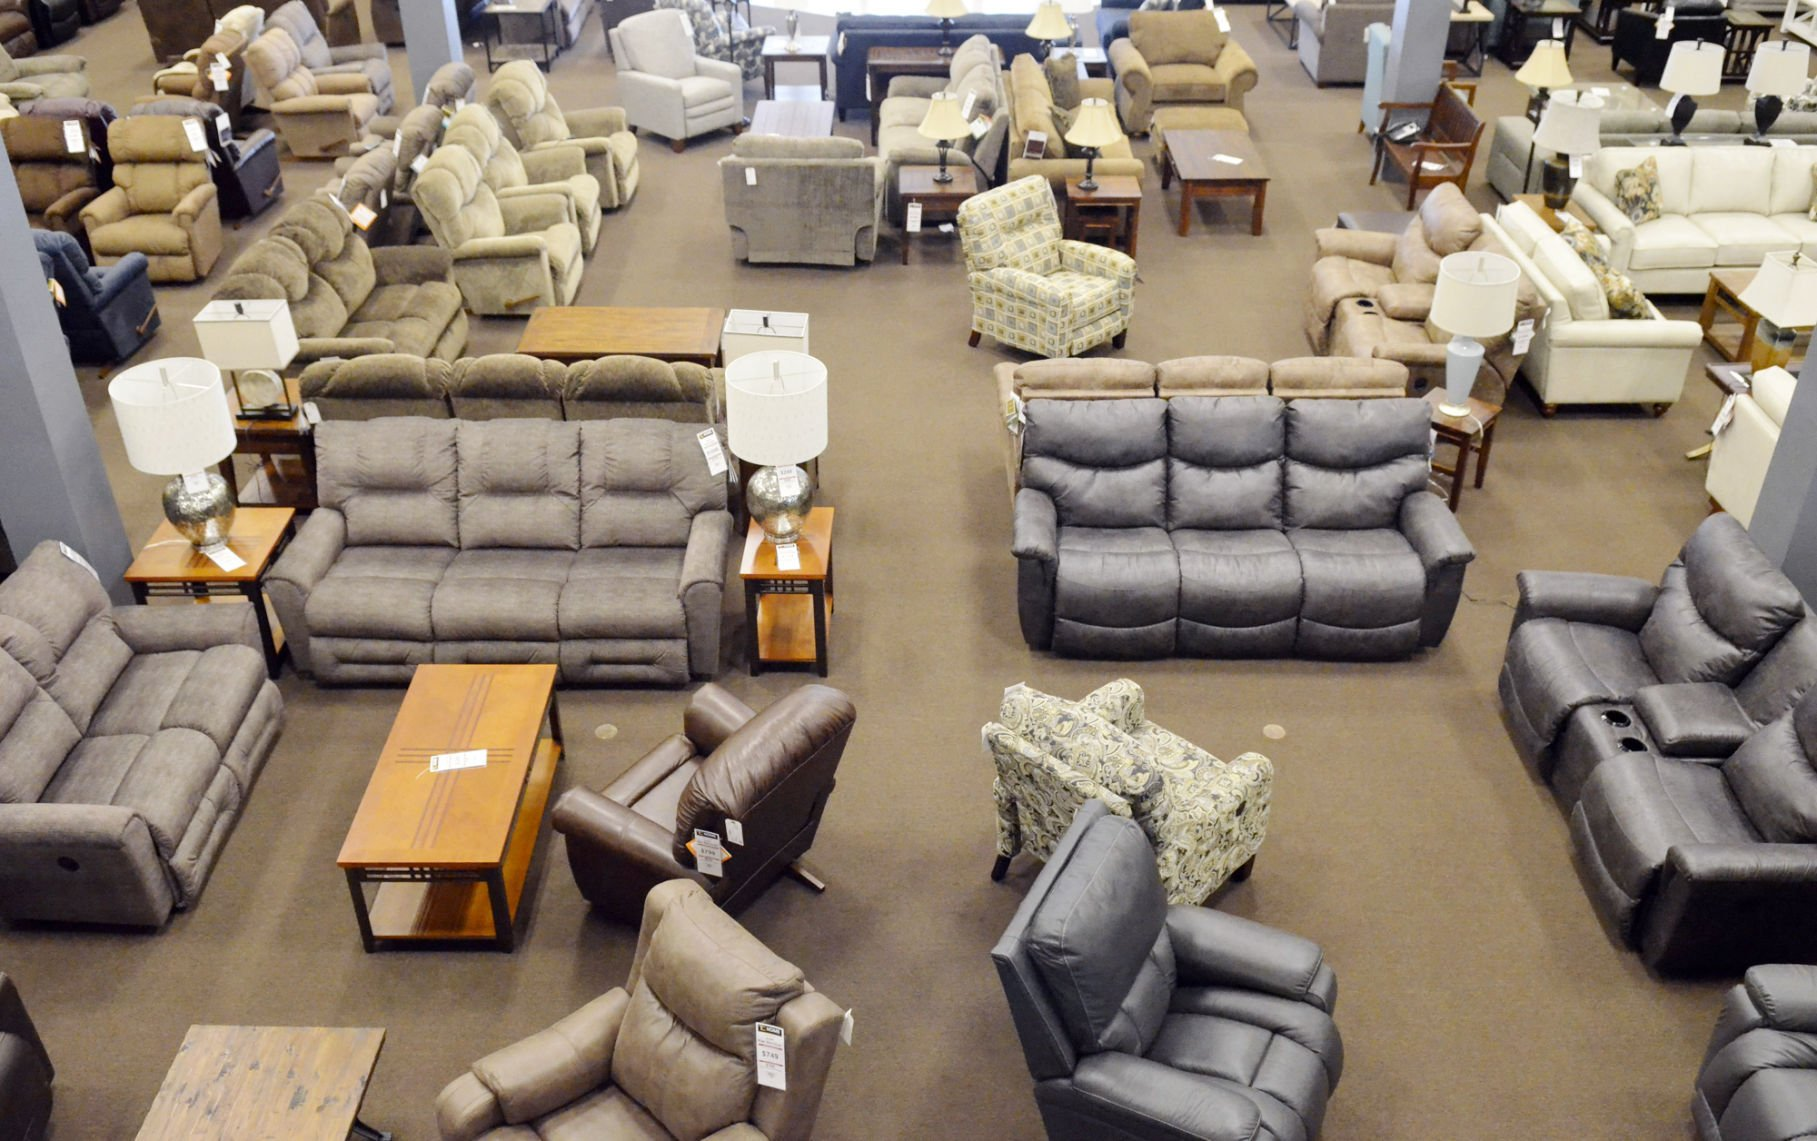 A View From The Mezzanine Level Of The New Downtown Furniture Store, TC  Home Furnishings, Shows Some Of The Inventory Of La Z Boy And Southern  Motion Brand ...